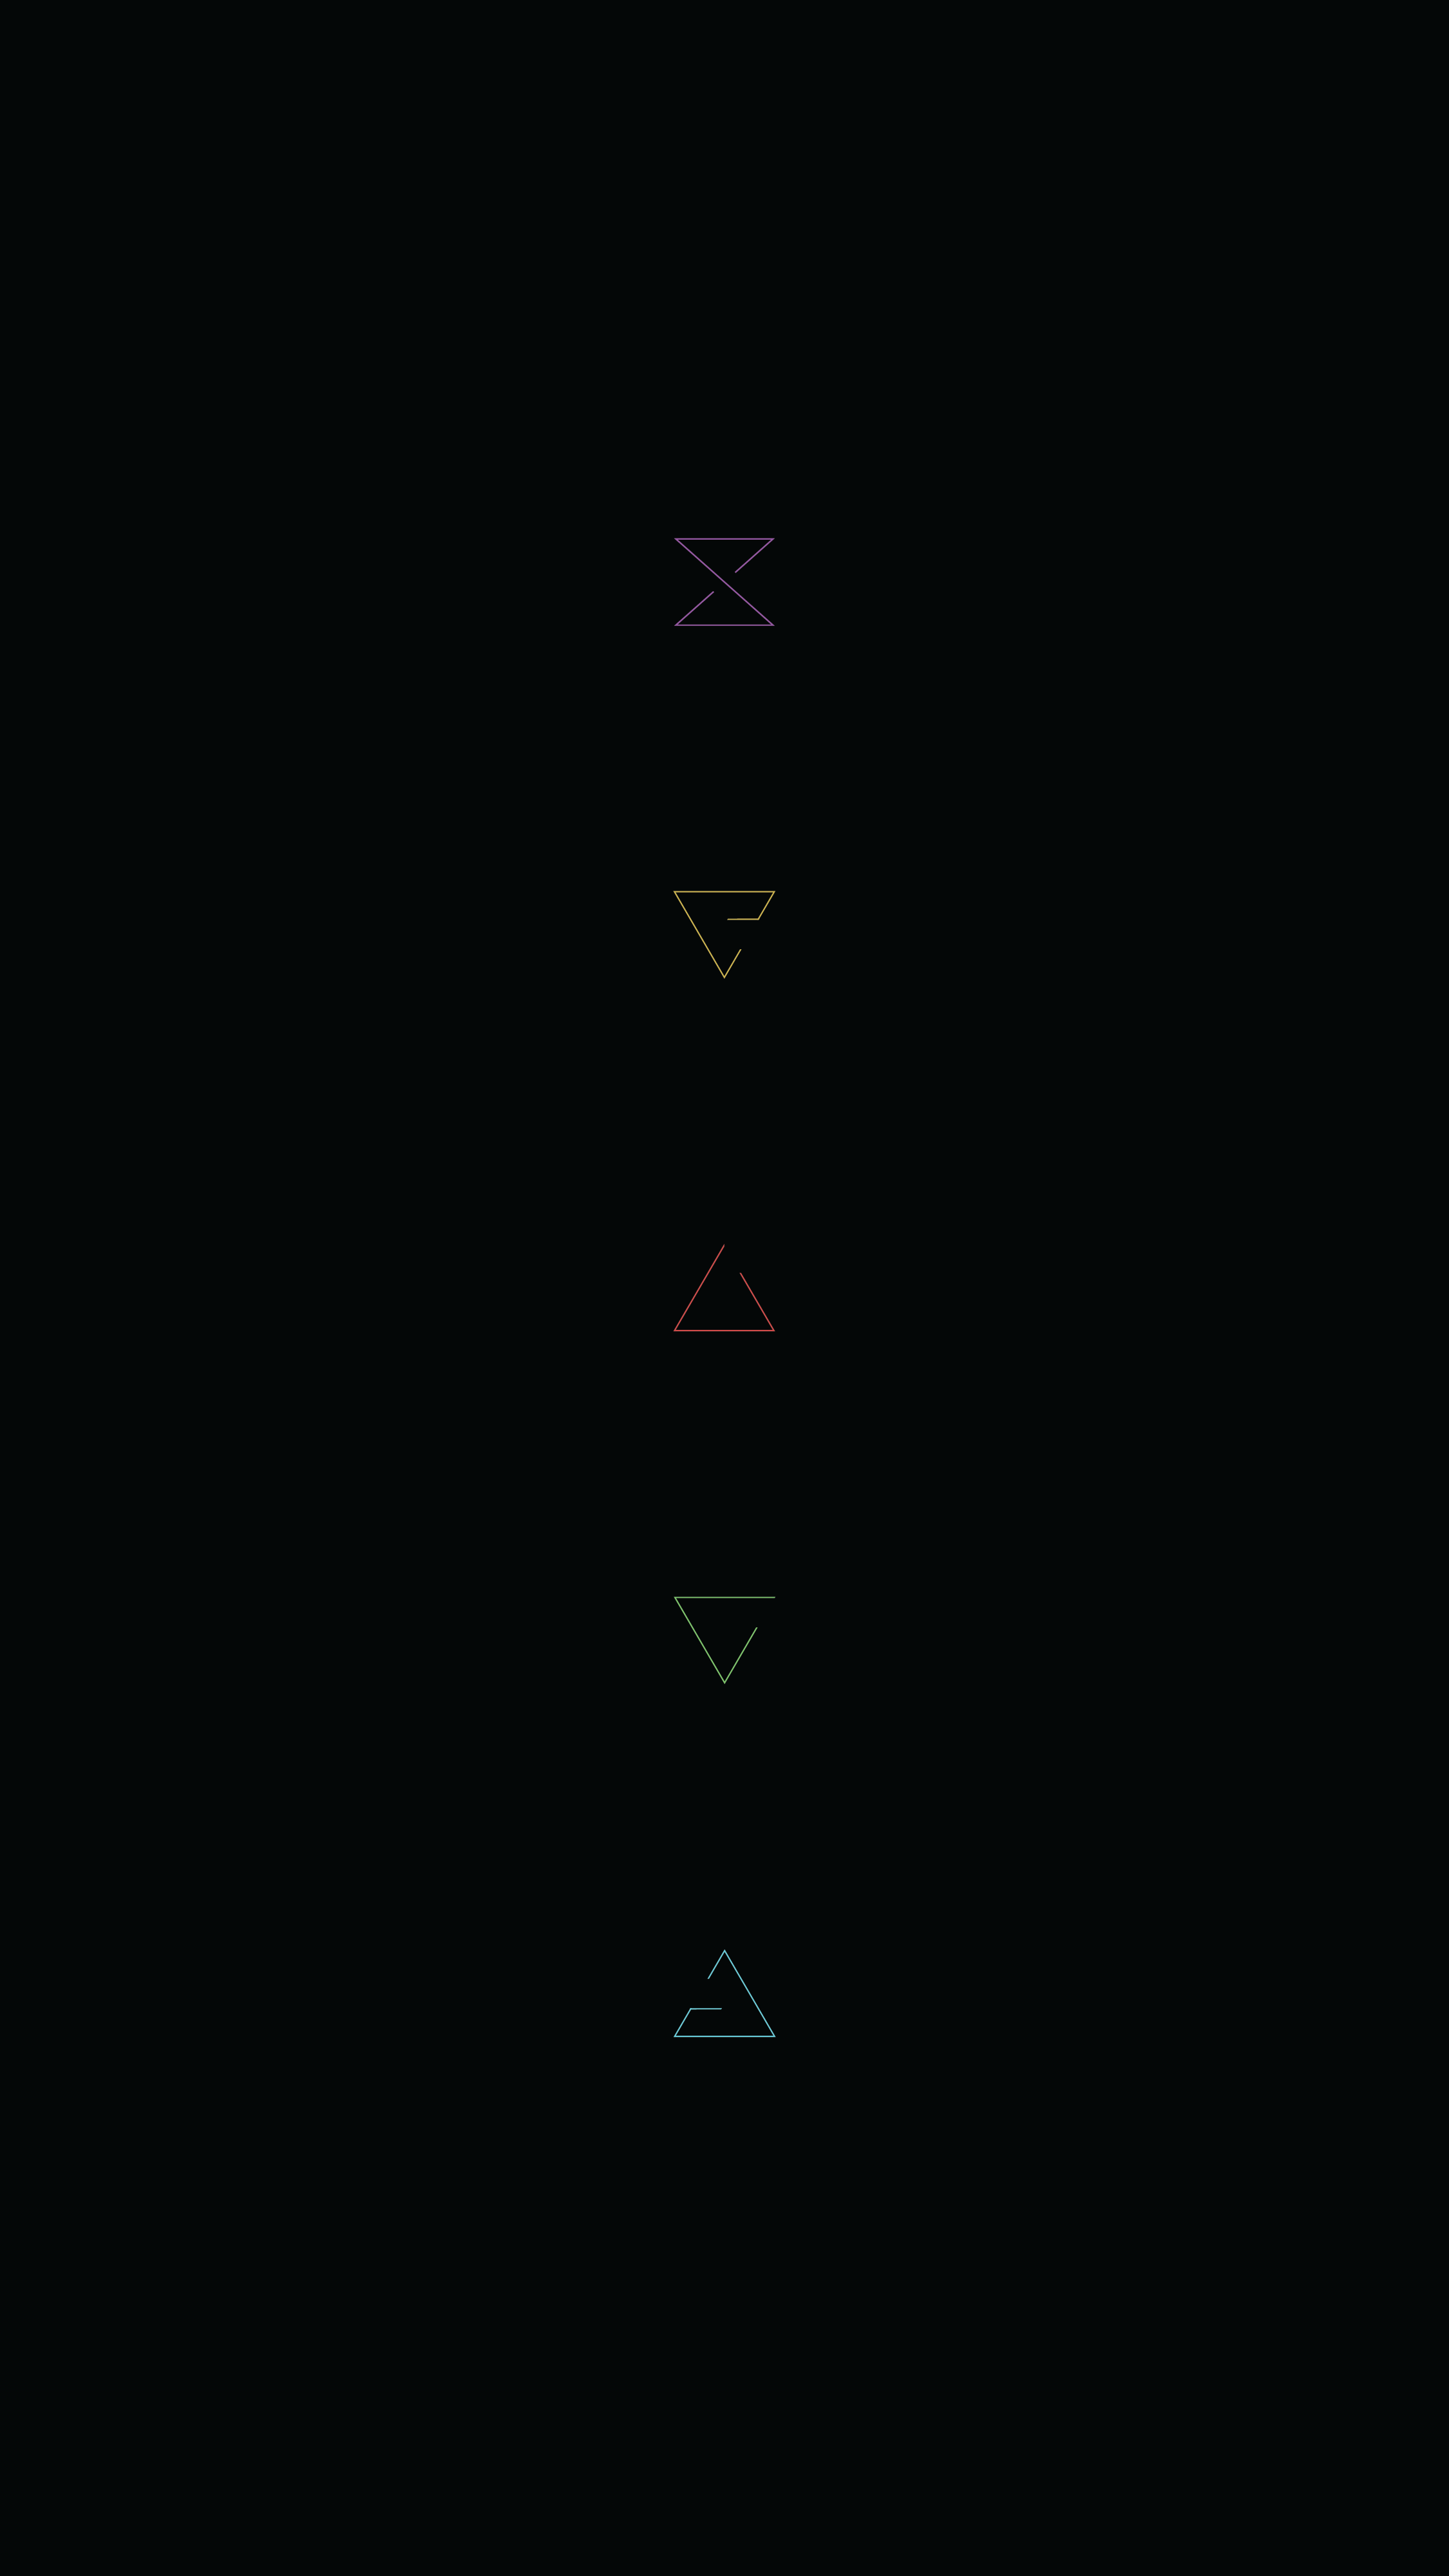 A minimal mobile wallpaper with Witcher's signs